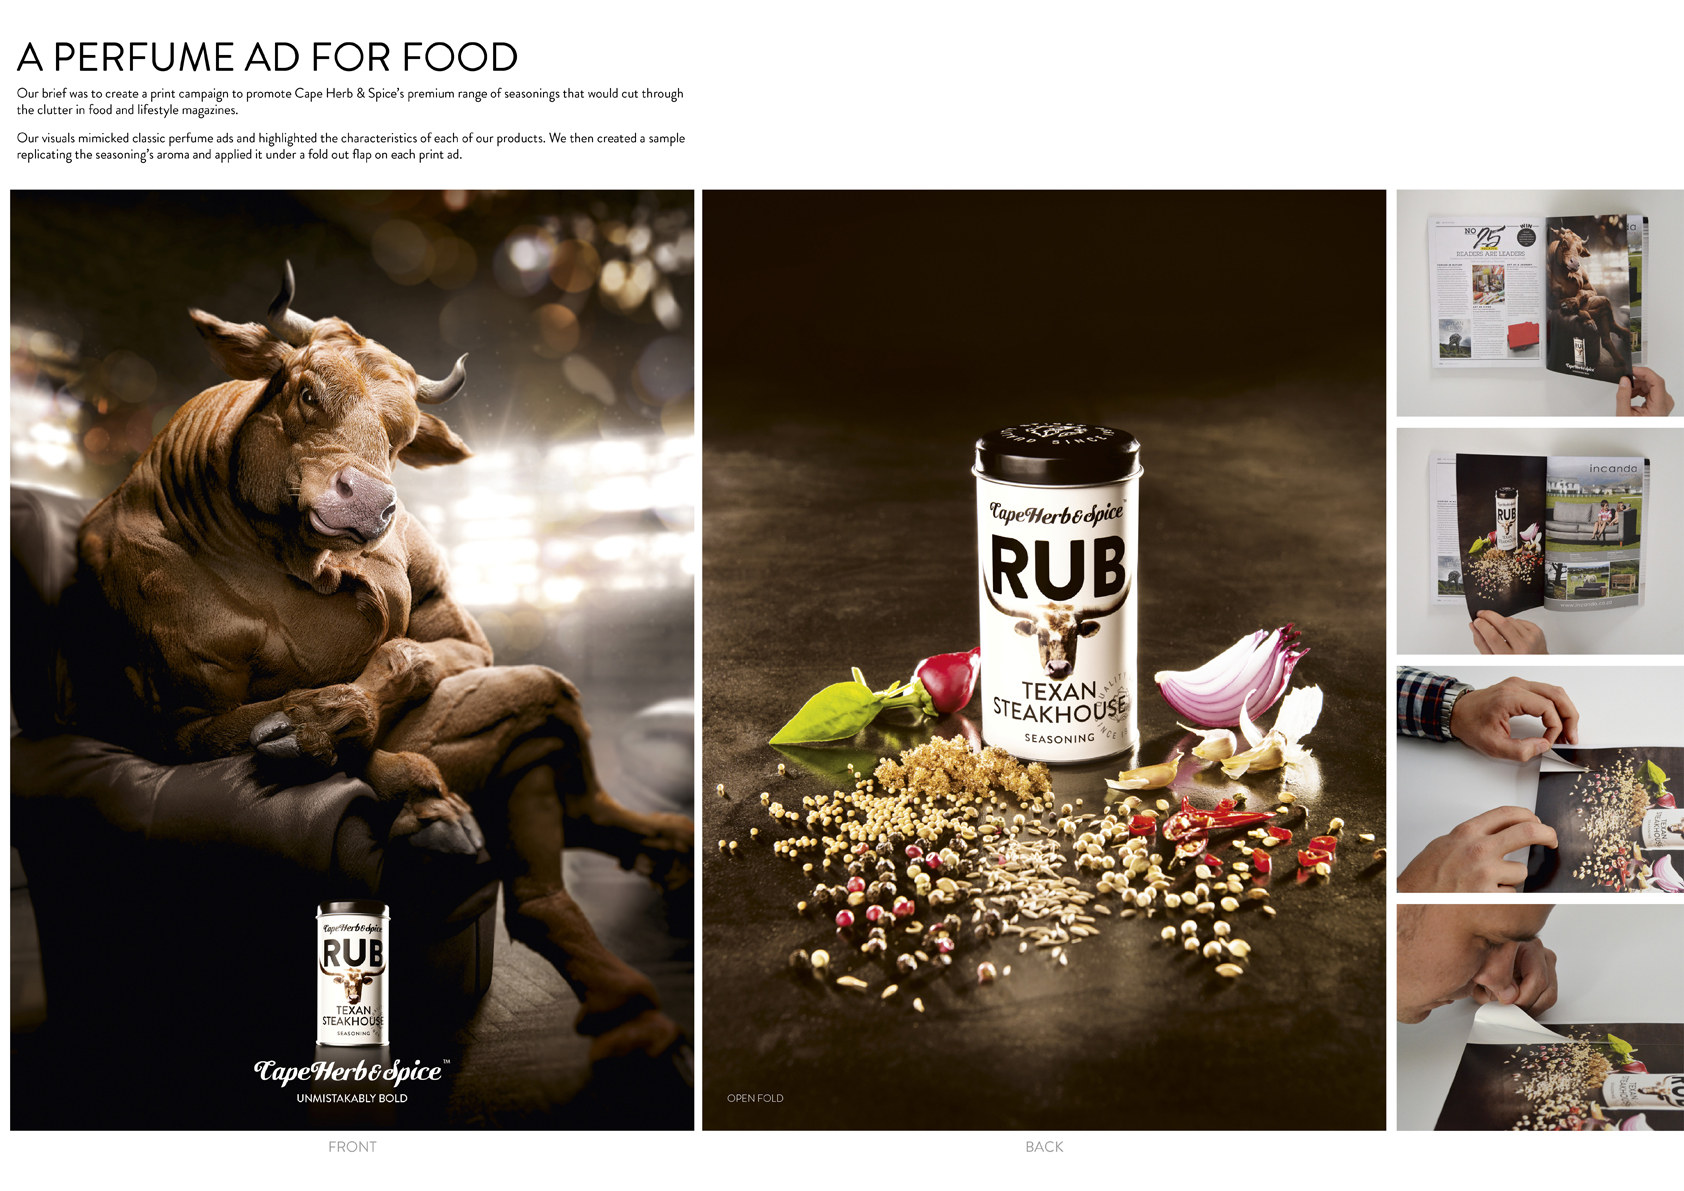 the-cape-herb-spice-company-cape-herb-spice-rubs-a-perfume-ad-for-food-media-direct-marketing-print-374758-adeevee.jpg